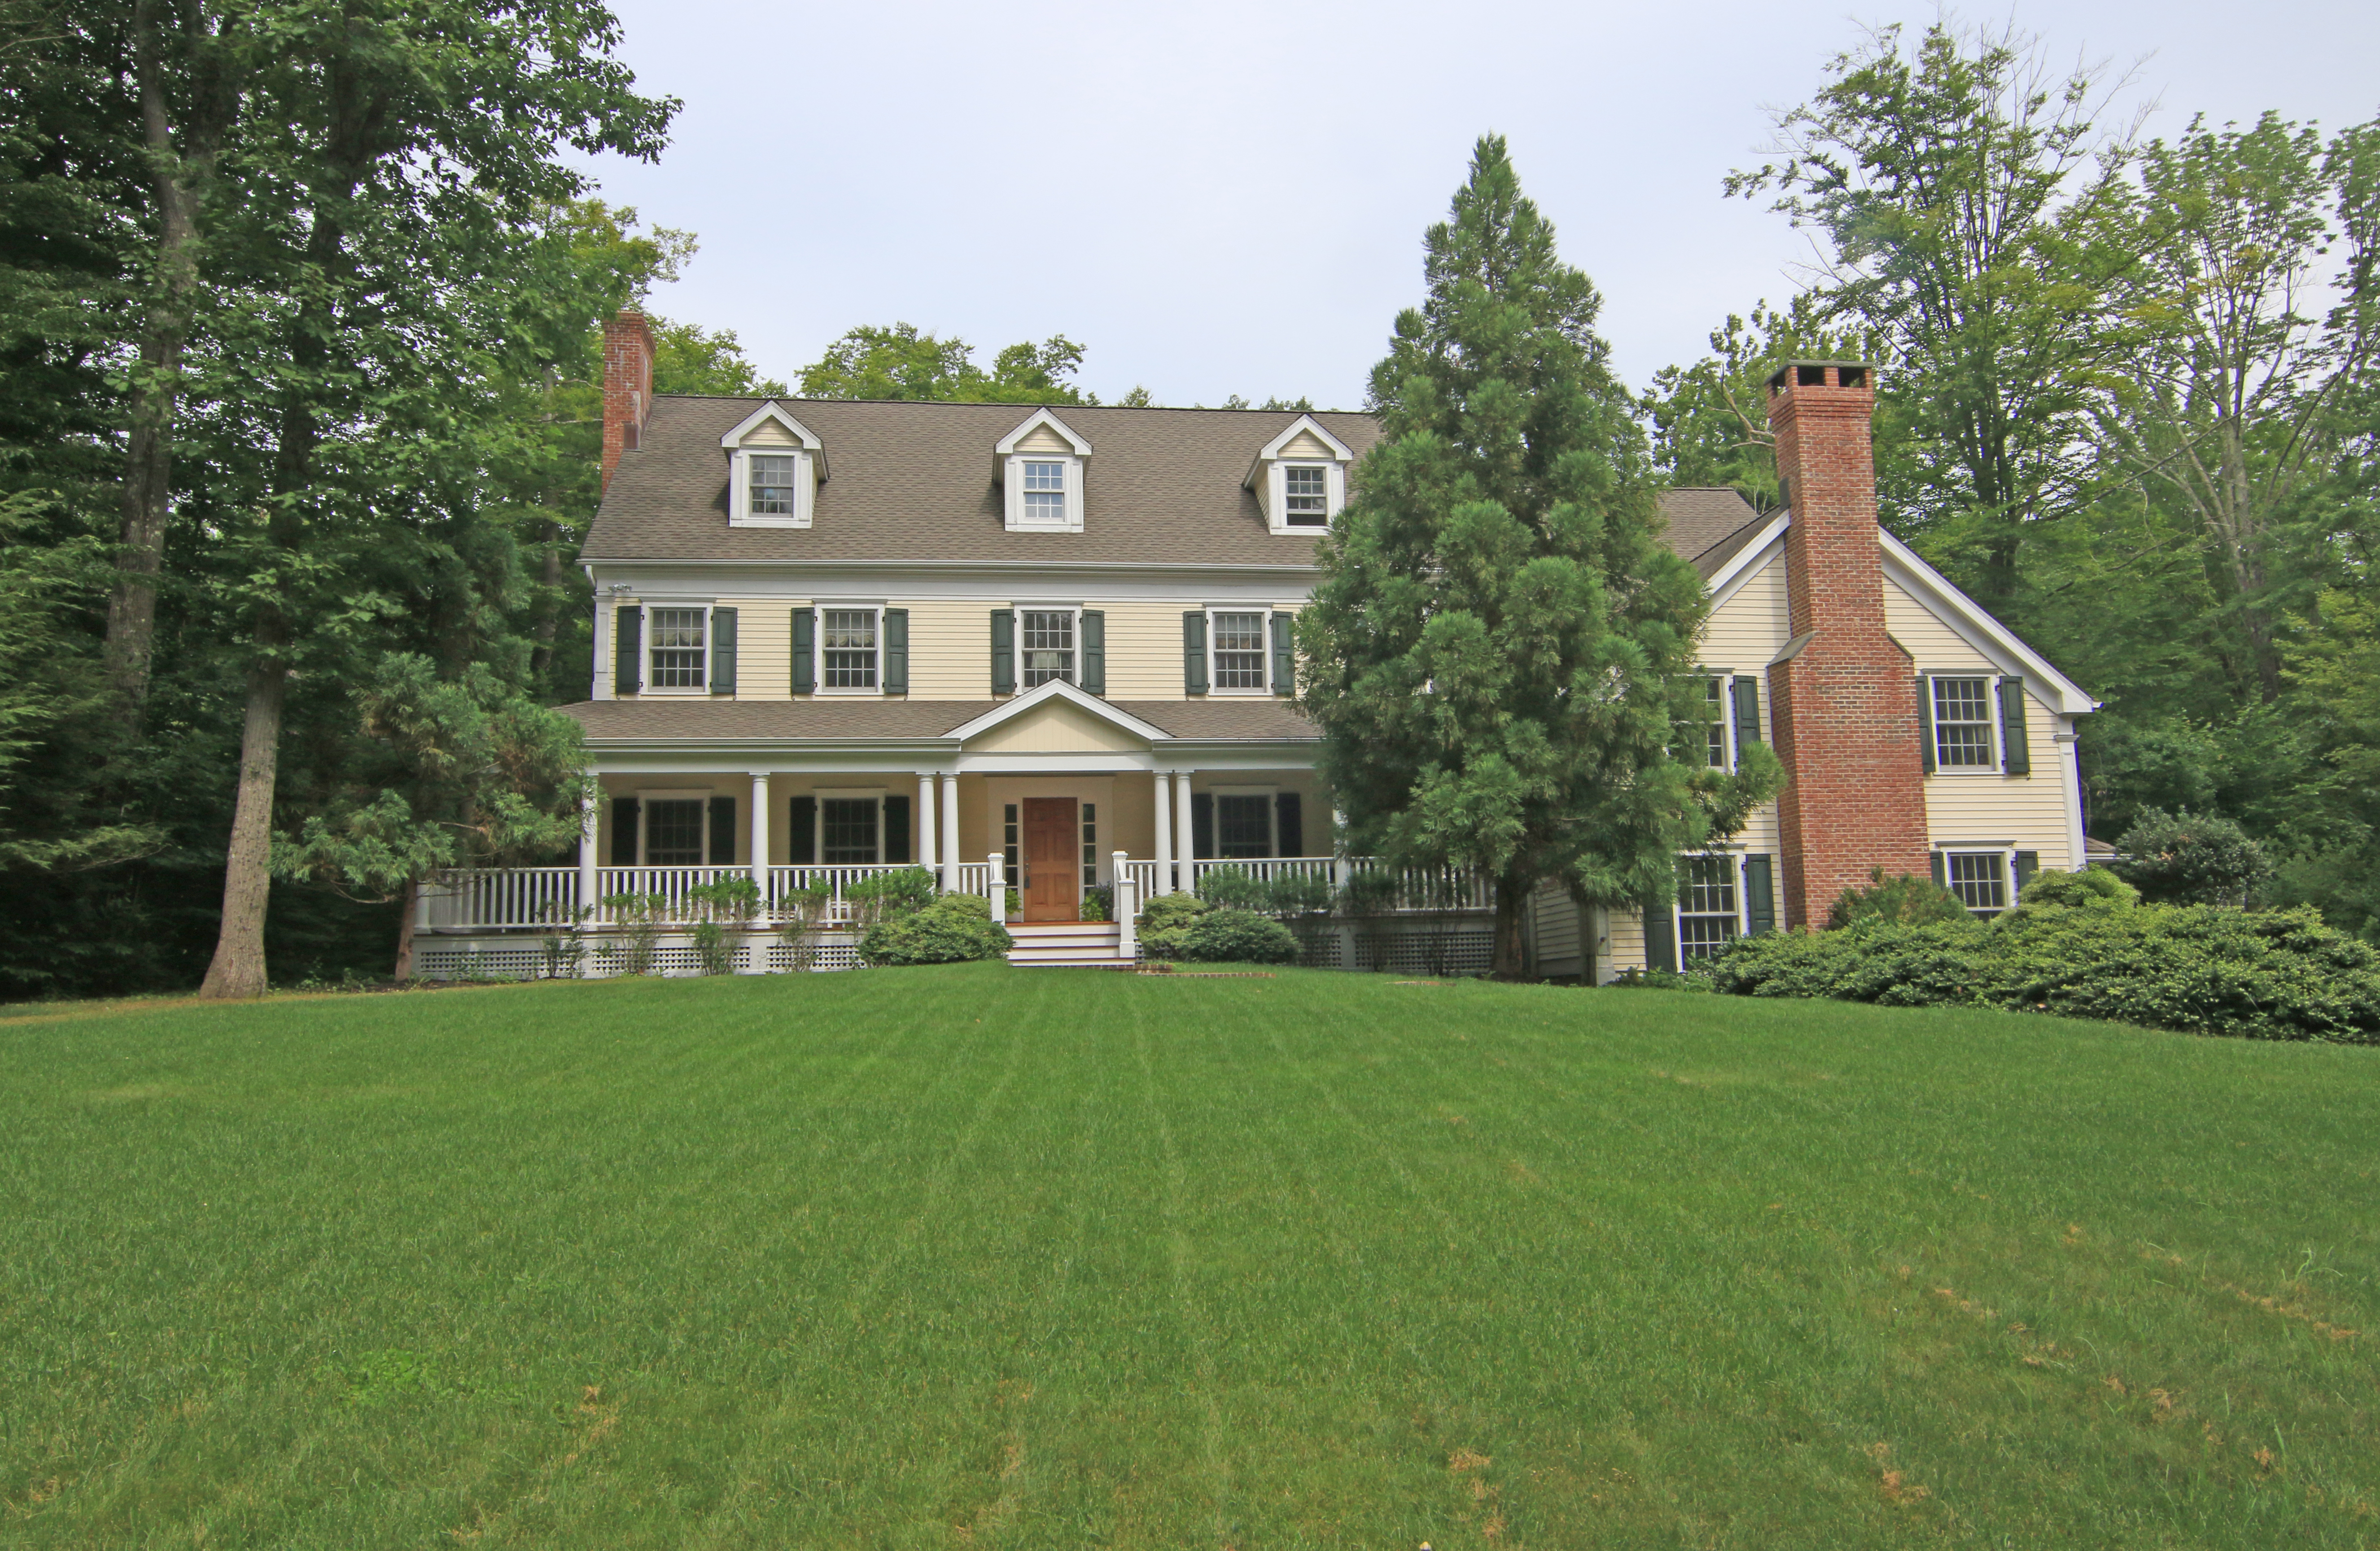 Single Family Home for Sale at Impeccable Home Bathed in Sunlight 138 Ridgefield Road Wilton, Connecticut 06897 United States